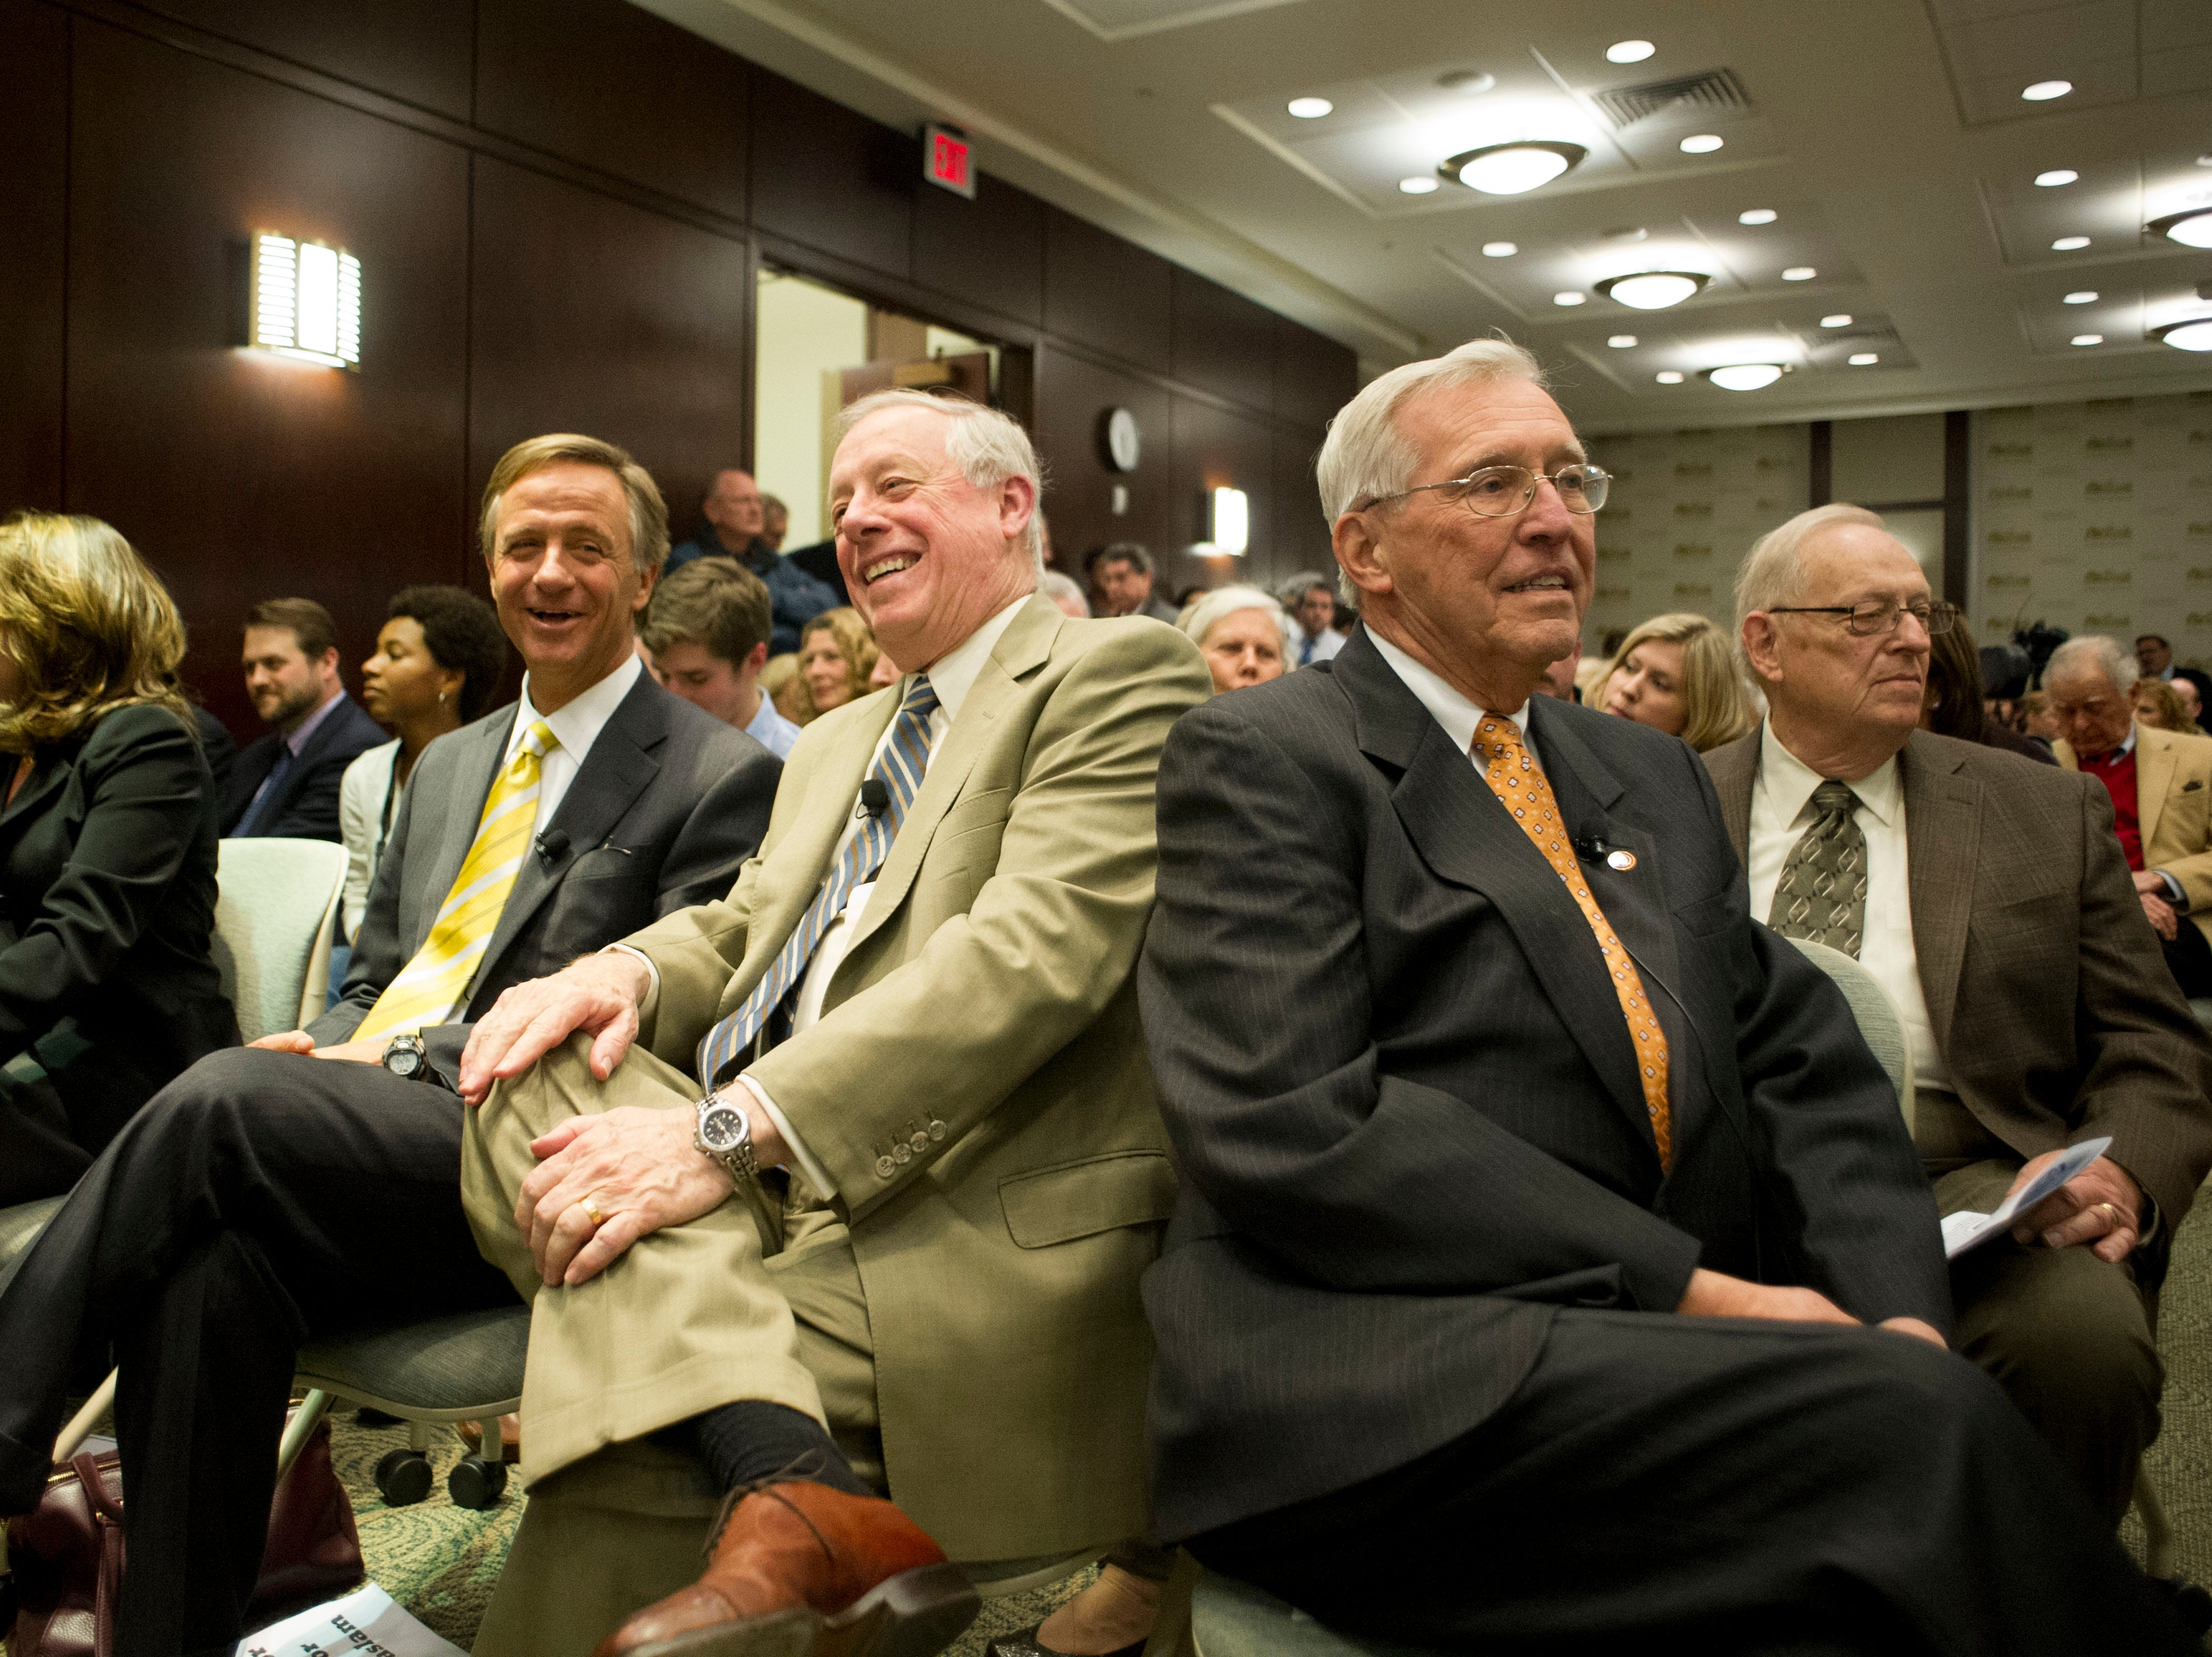 From right, former Tennessee governors Don Sundquist, Phil Bredesen, and current governor Bill Haslam wait together for the start of the event, Civility & Effective Governance at the Howard Baker Center of Public Policy on Thursday, February 21, 2013. The three gathered together in for the event to talk about civility in government.